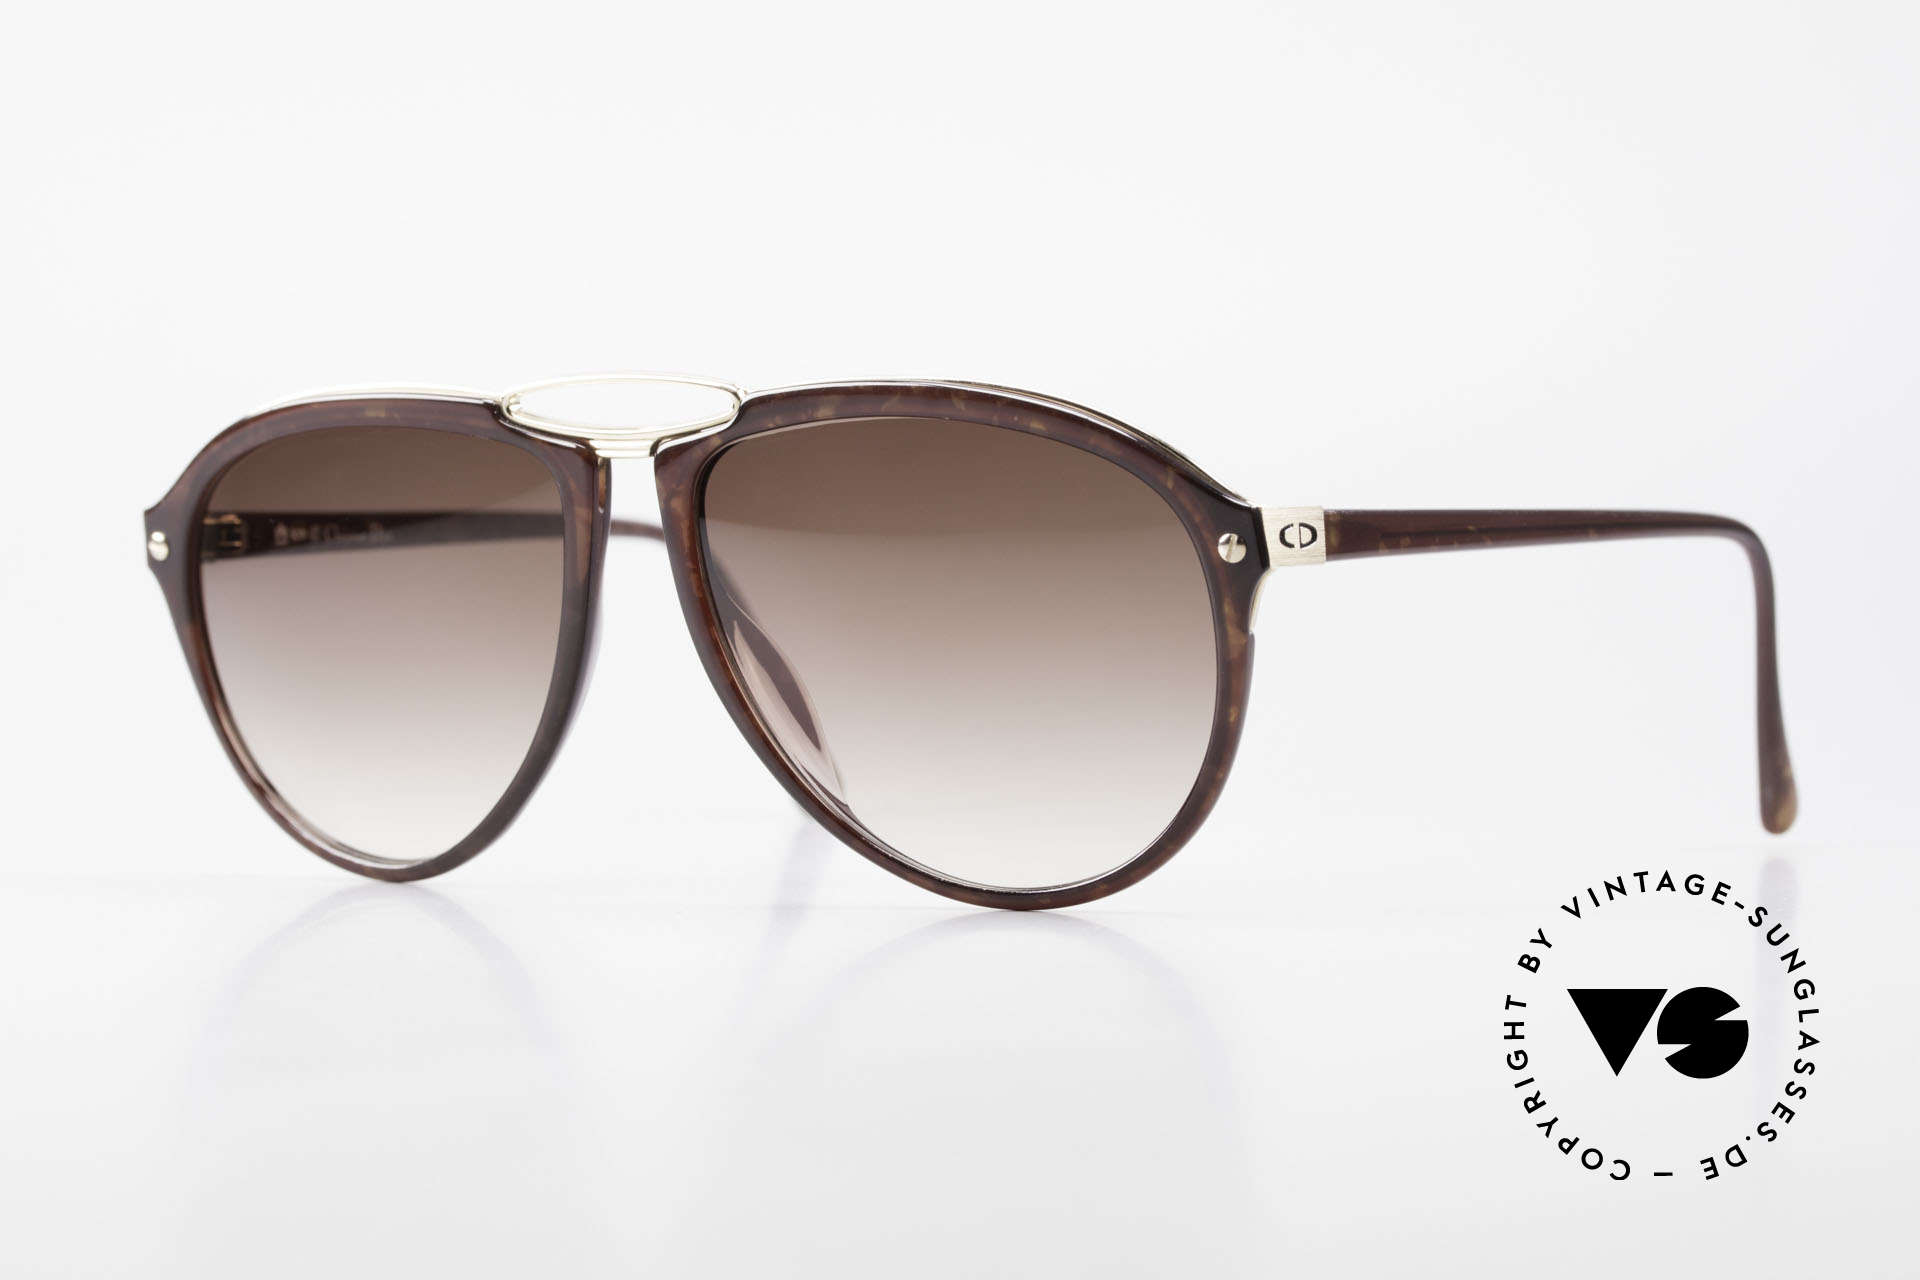 Christian Dior 2523 True 80's No Retro Sunglasses, unique vintage designer shades by Christian Dior, Made for Men